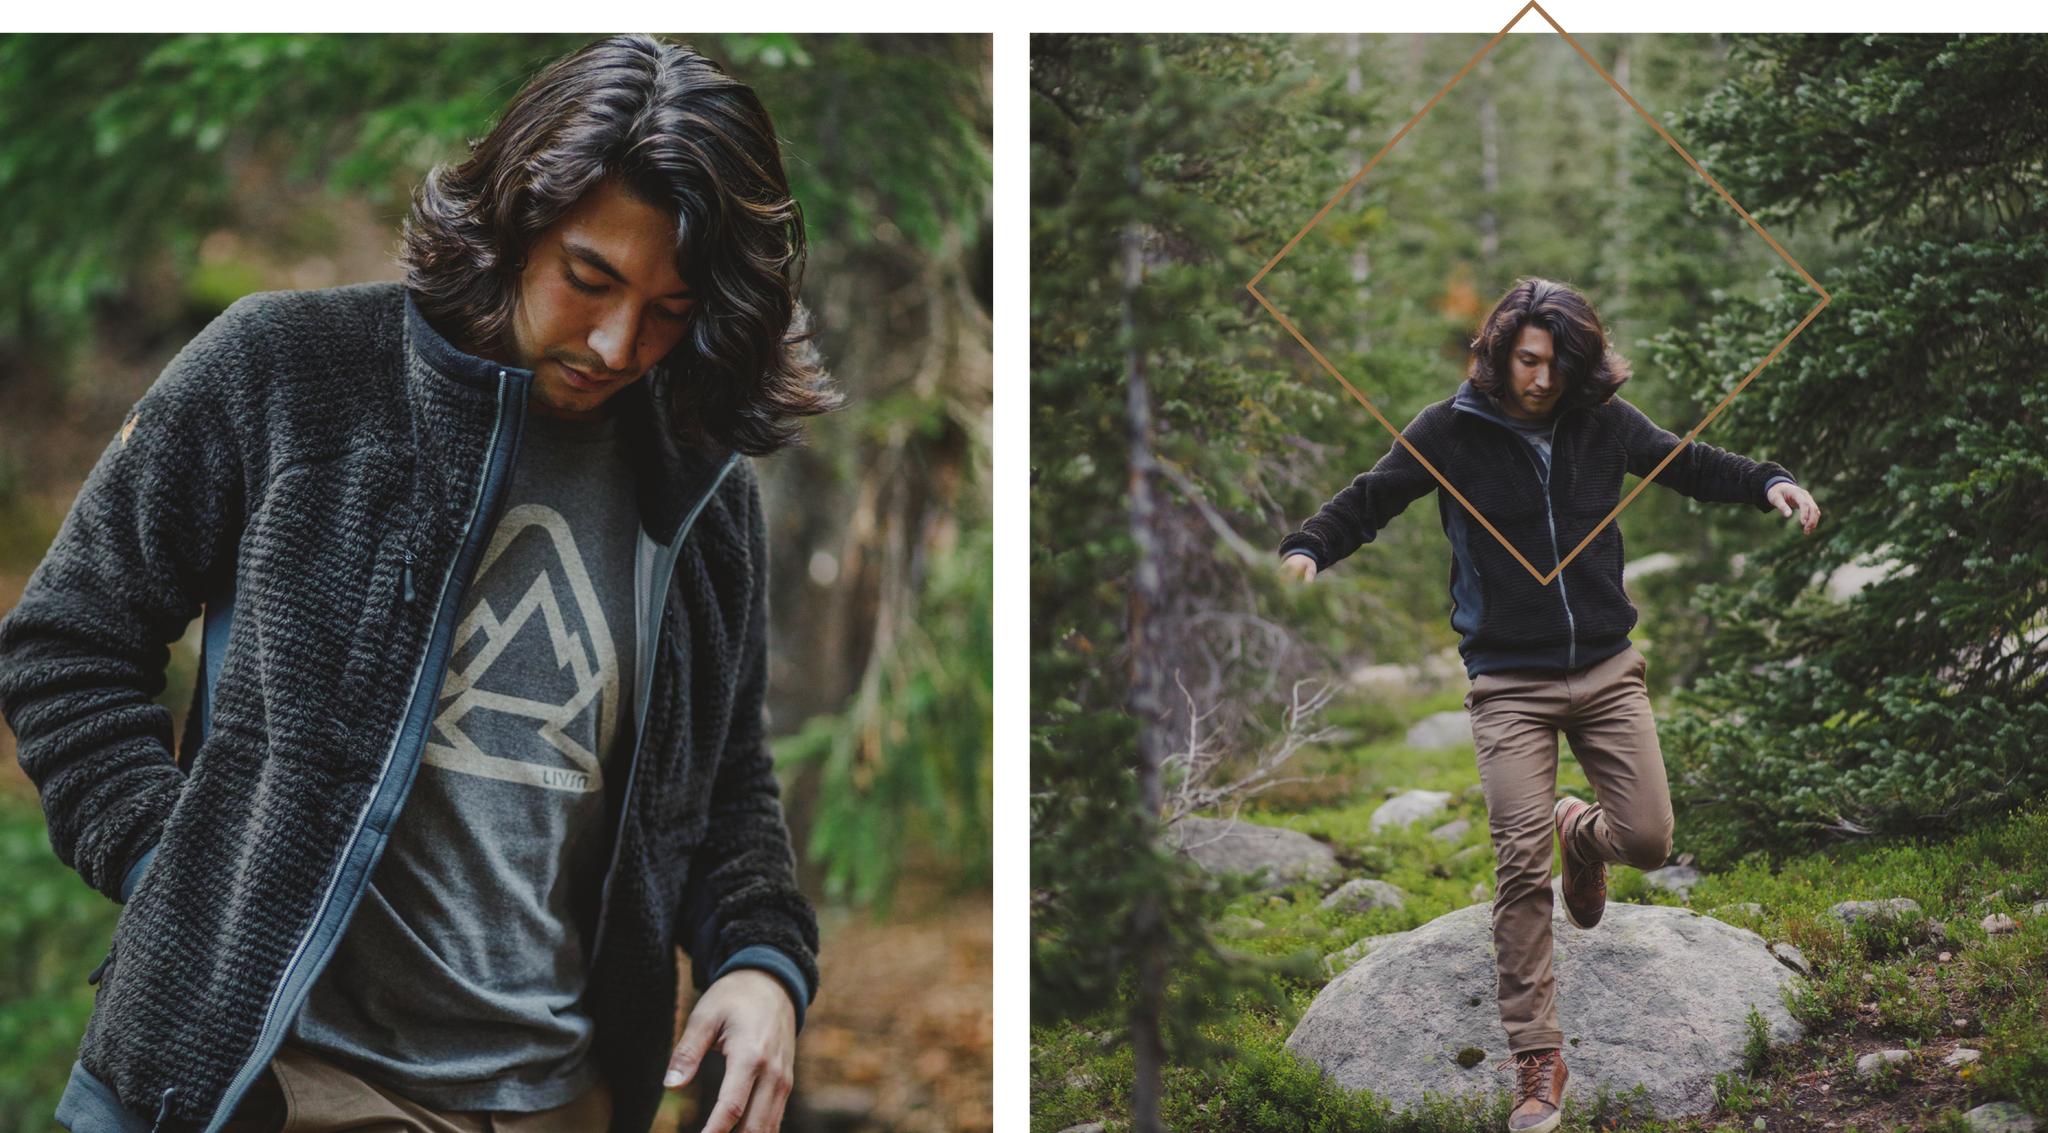 Model wearing the Livsn fleece while trekking through the woods